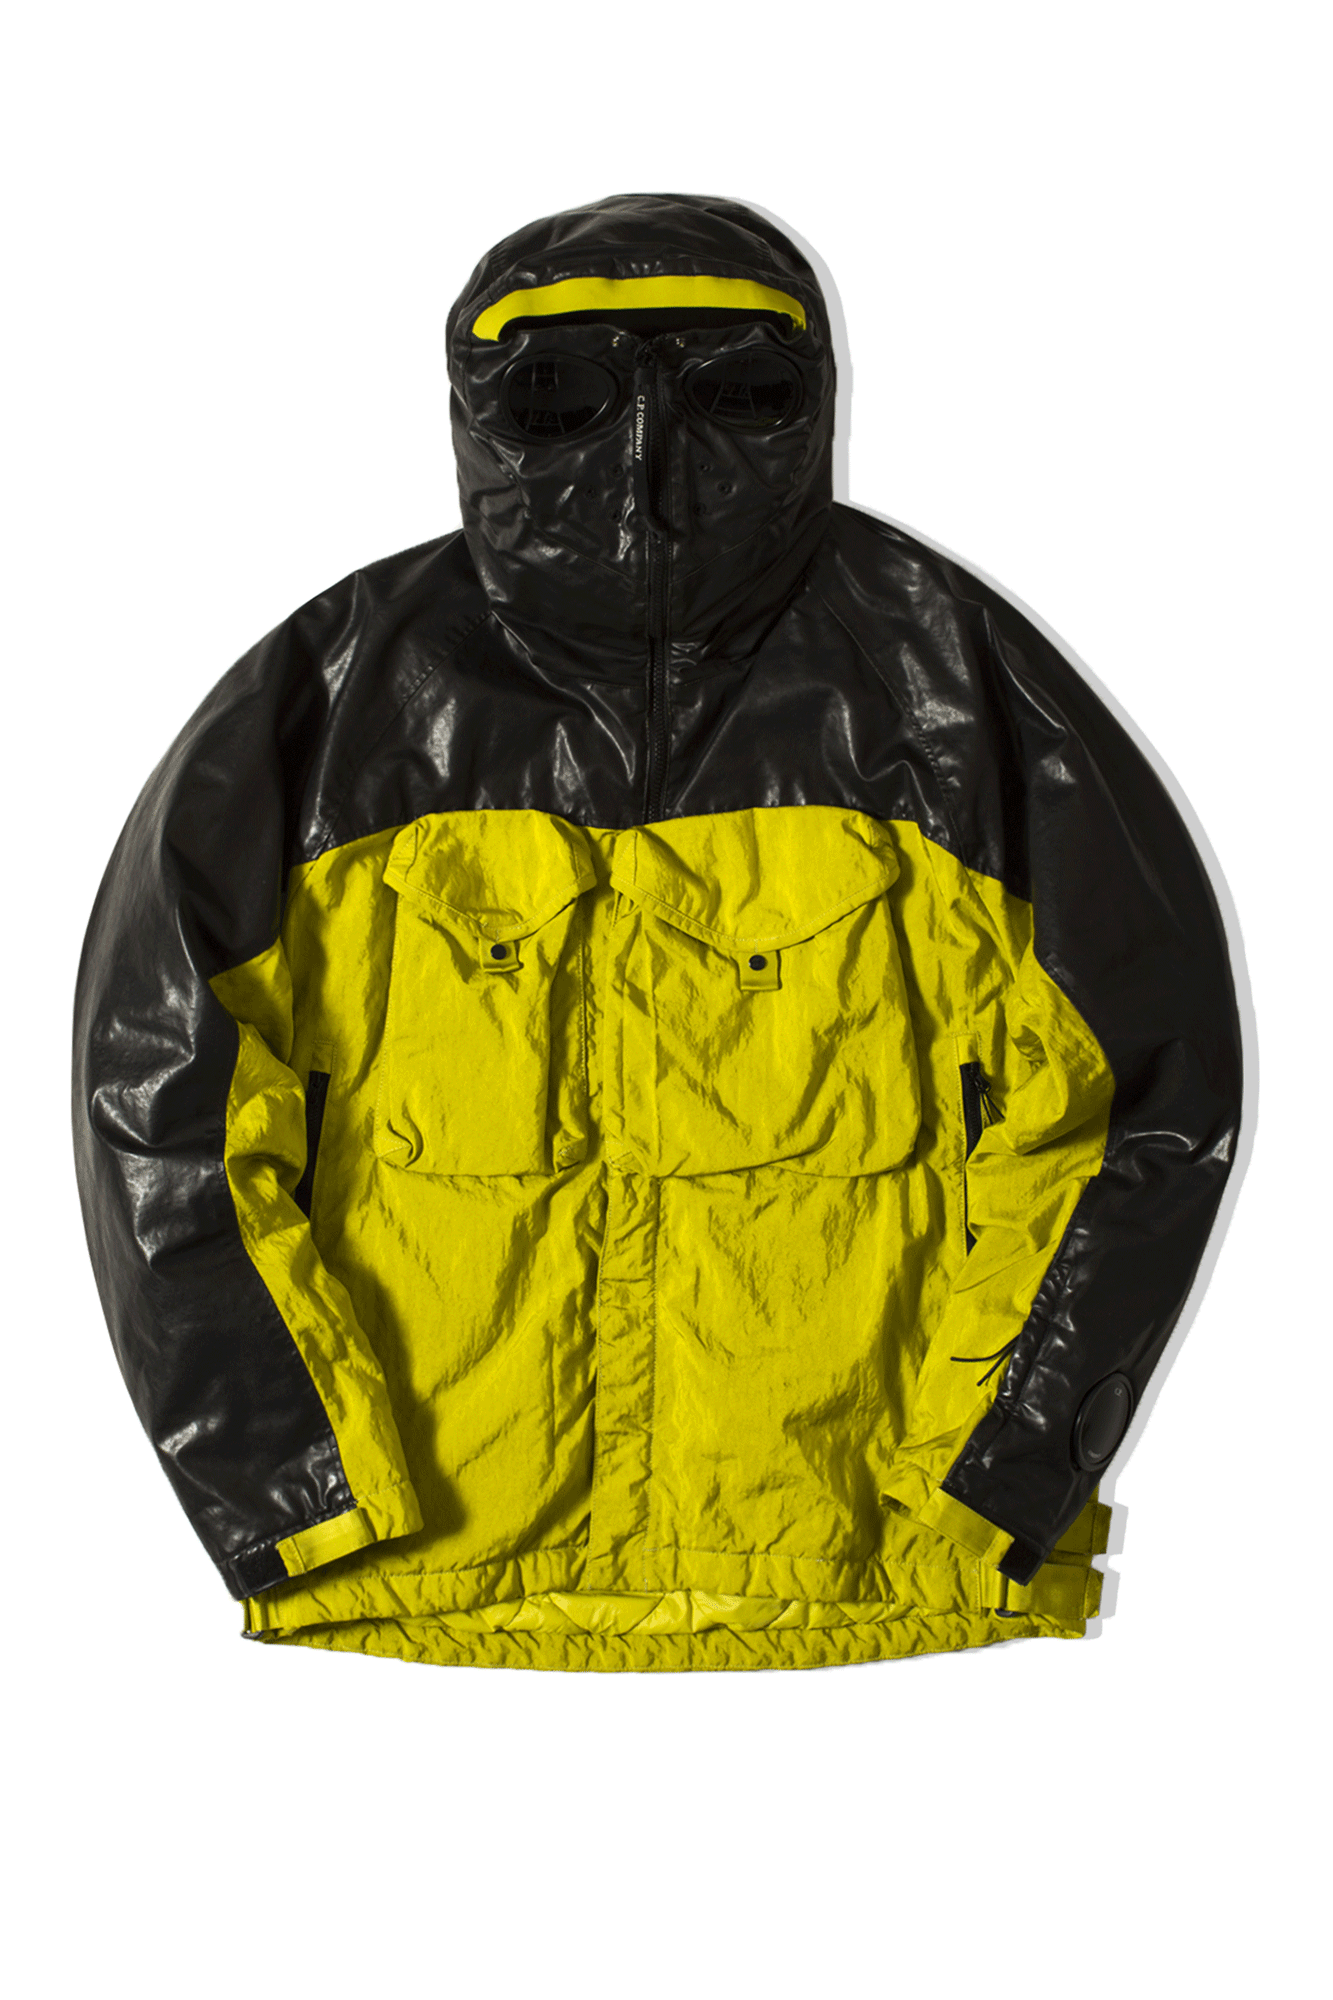 MEDIUM JACKET Yellow